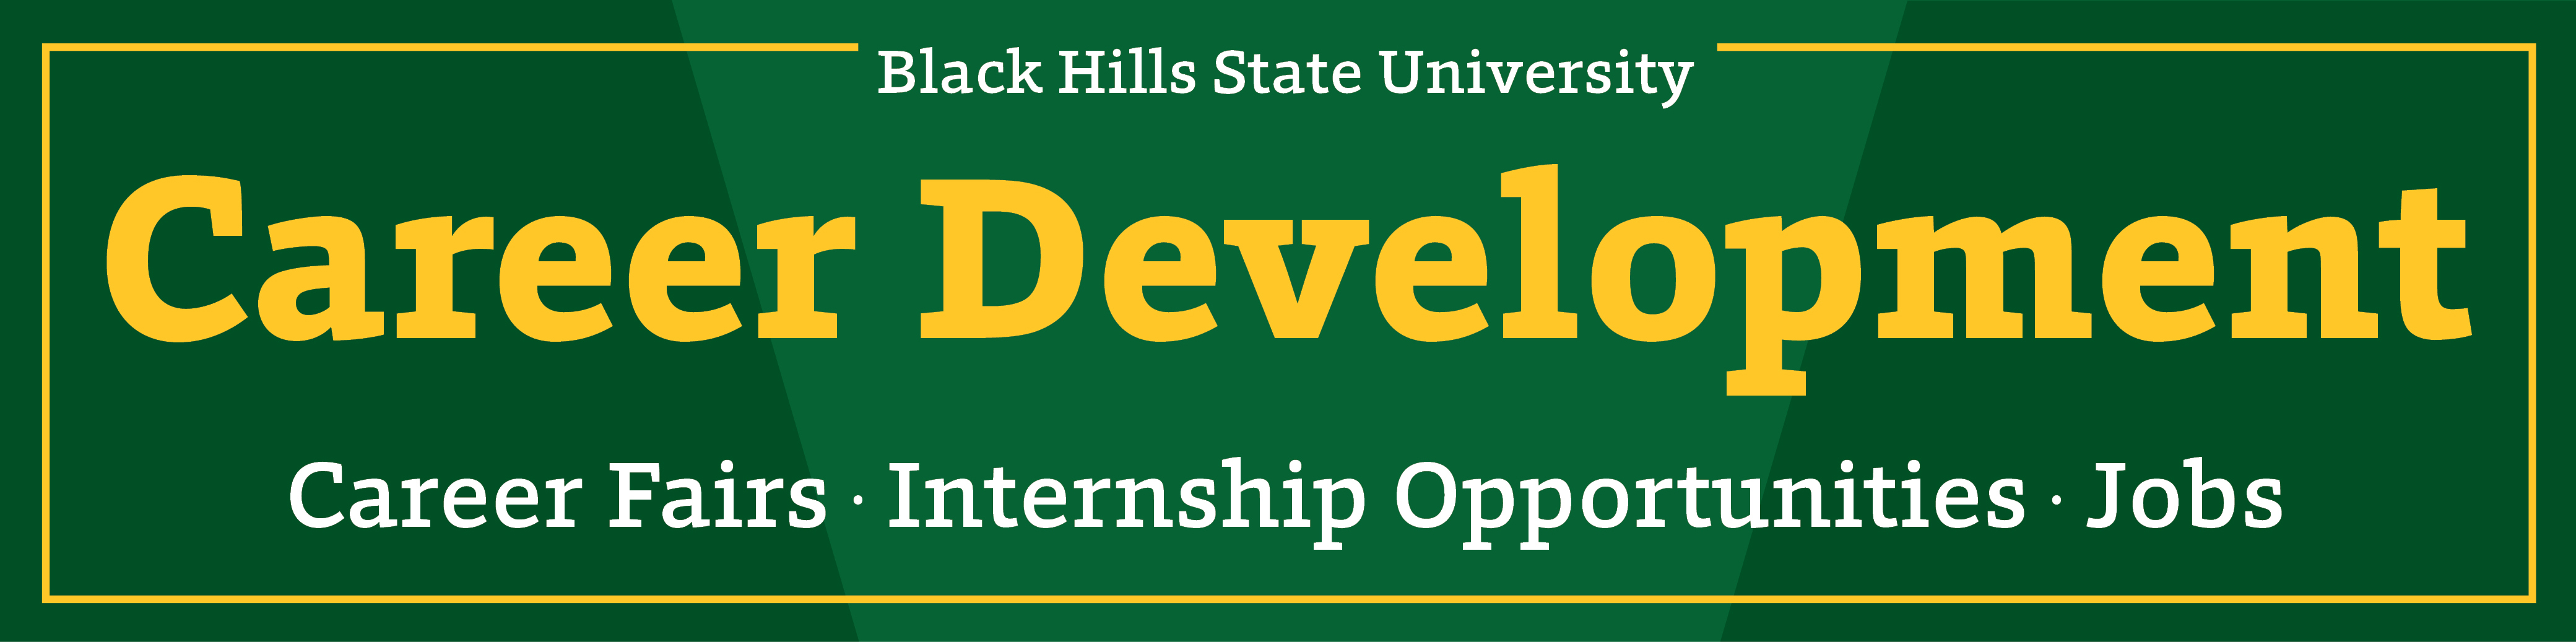 Career Development at BHSU